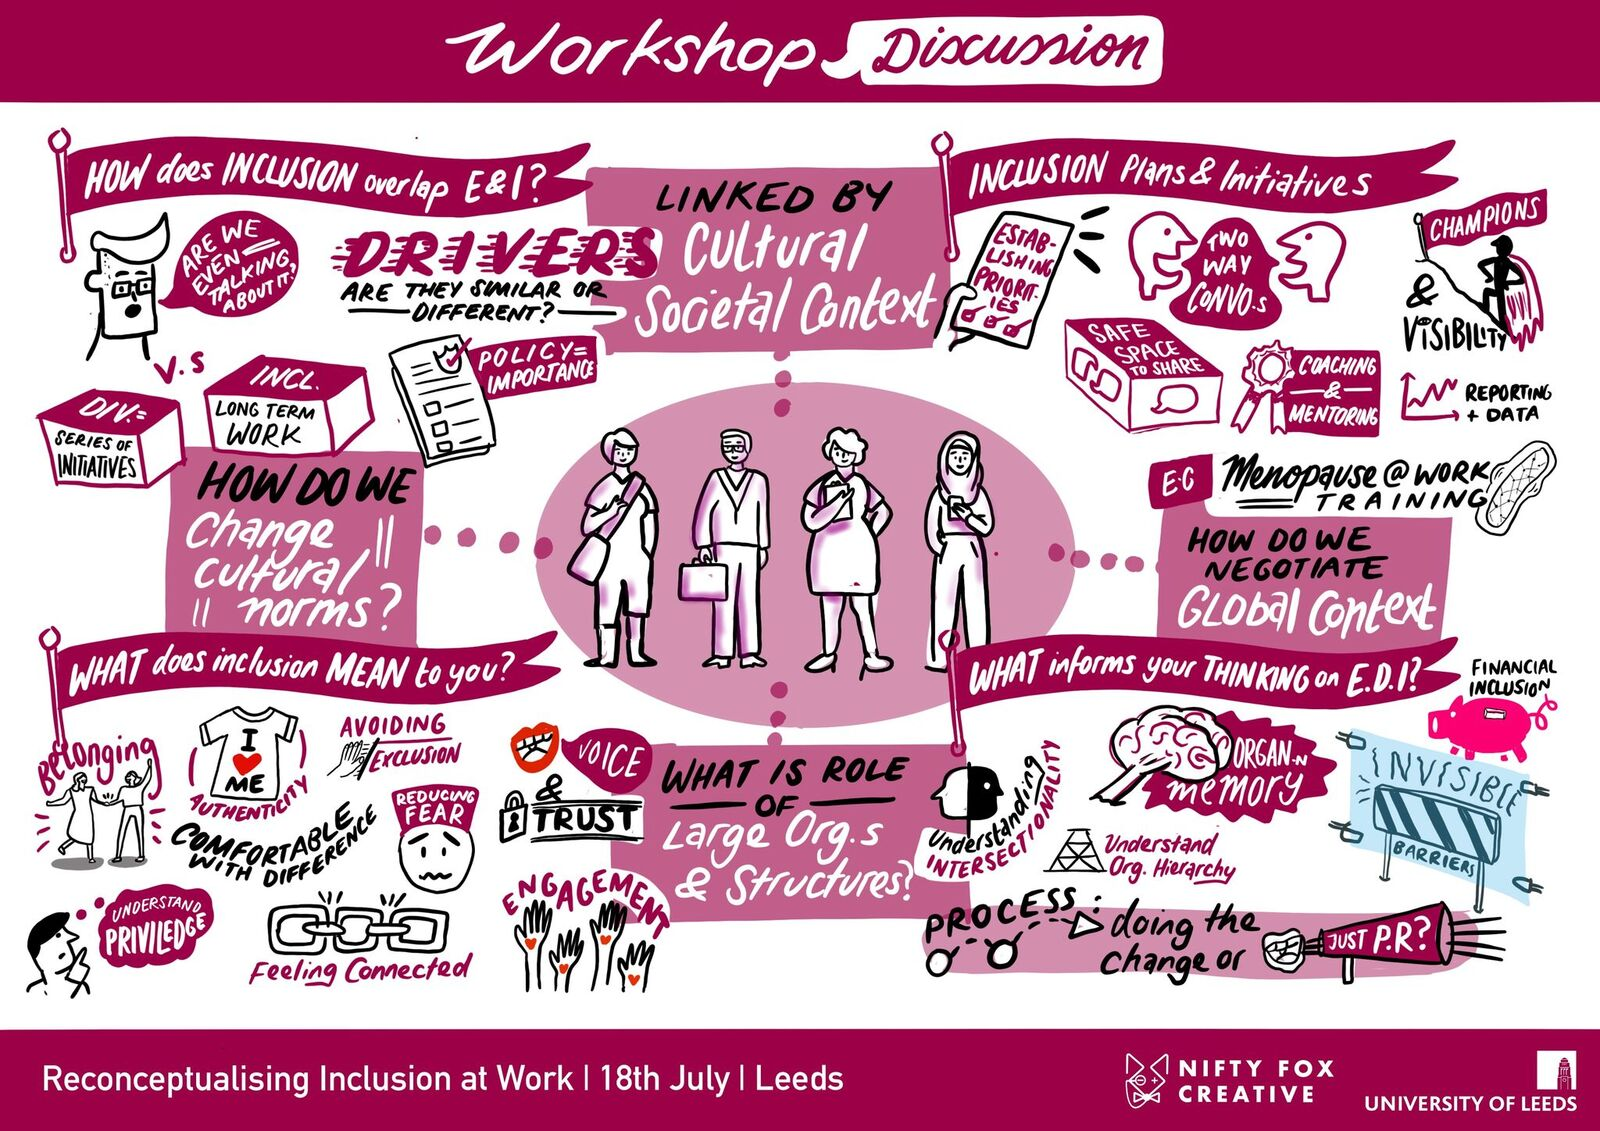 Illustrative notes taken at the reconceptualising inclusion at work event